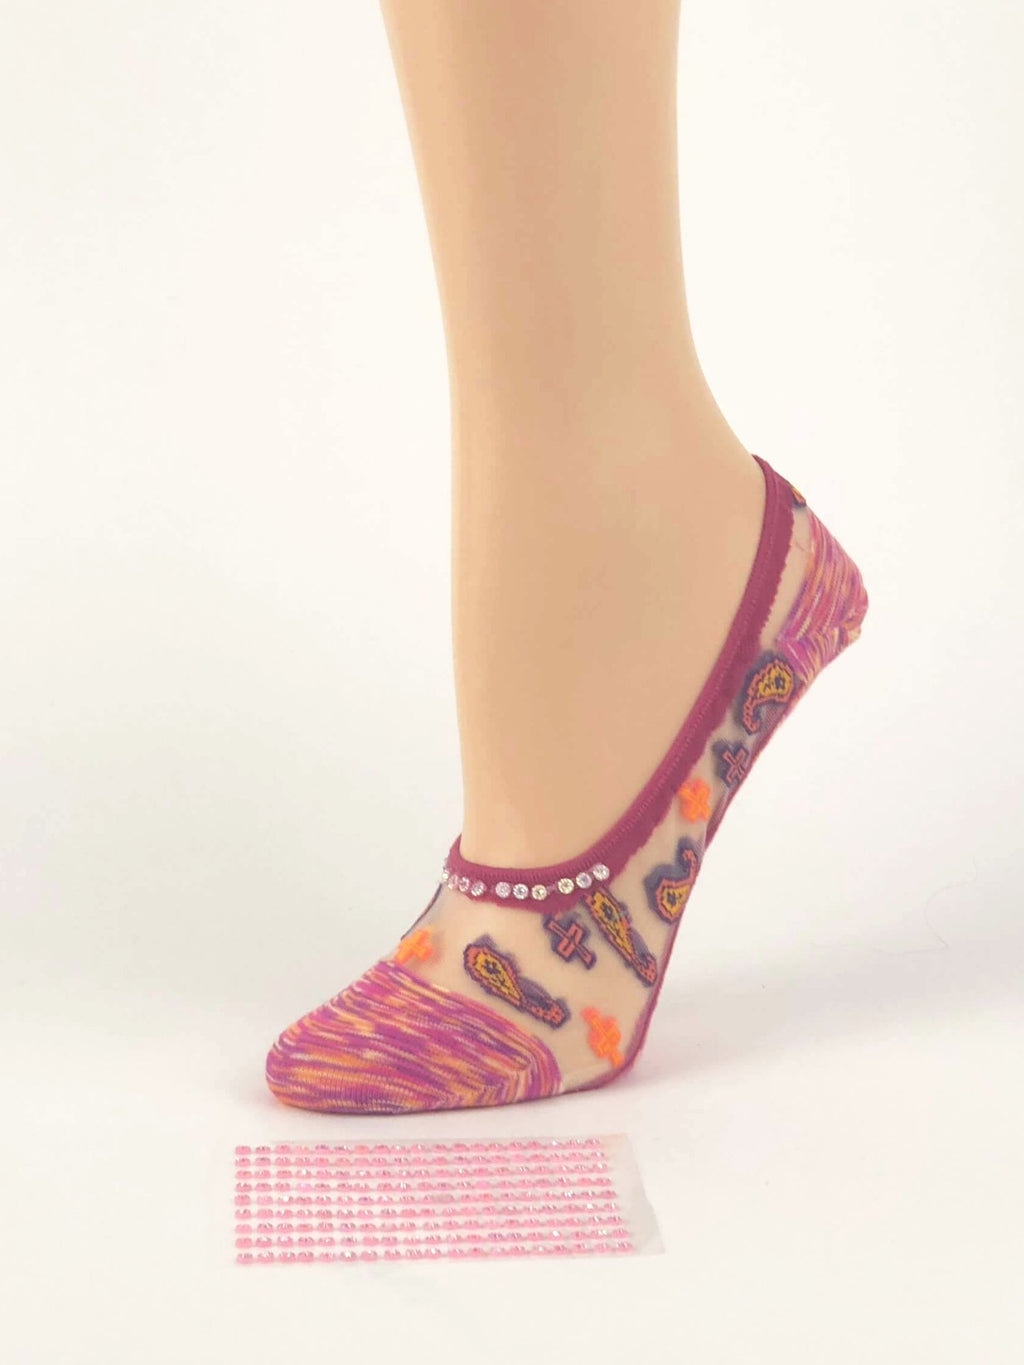 Pink/Orange Patterned Ankle Sheer Socks - Global Trendz Fashion®